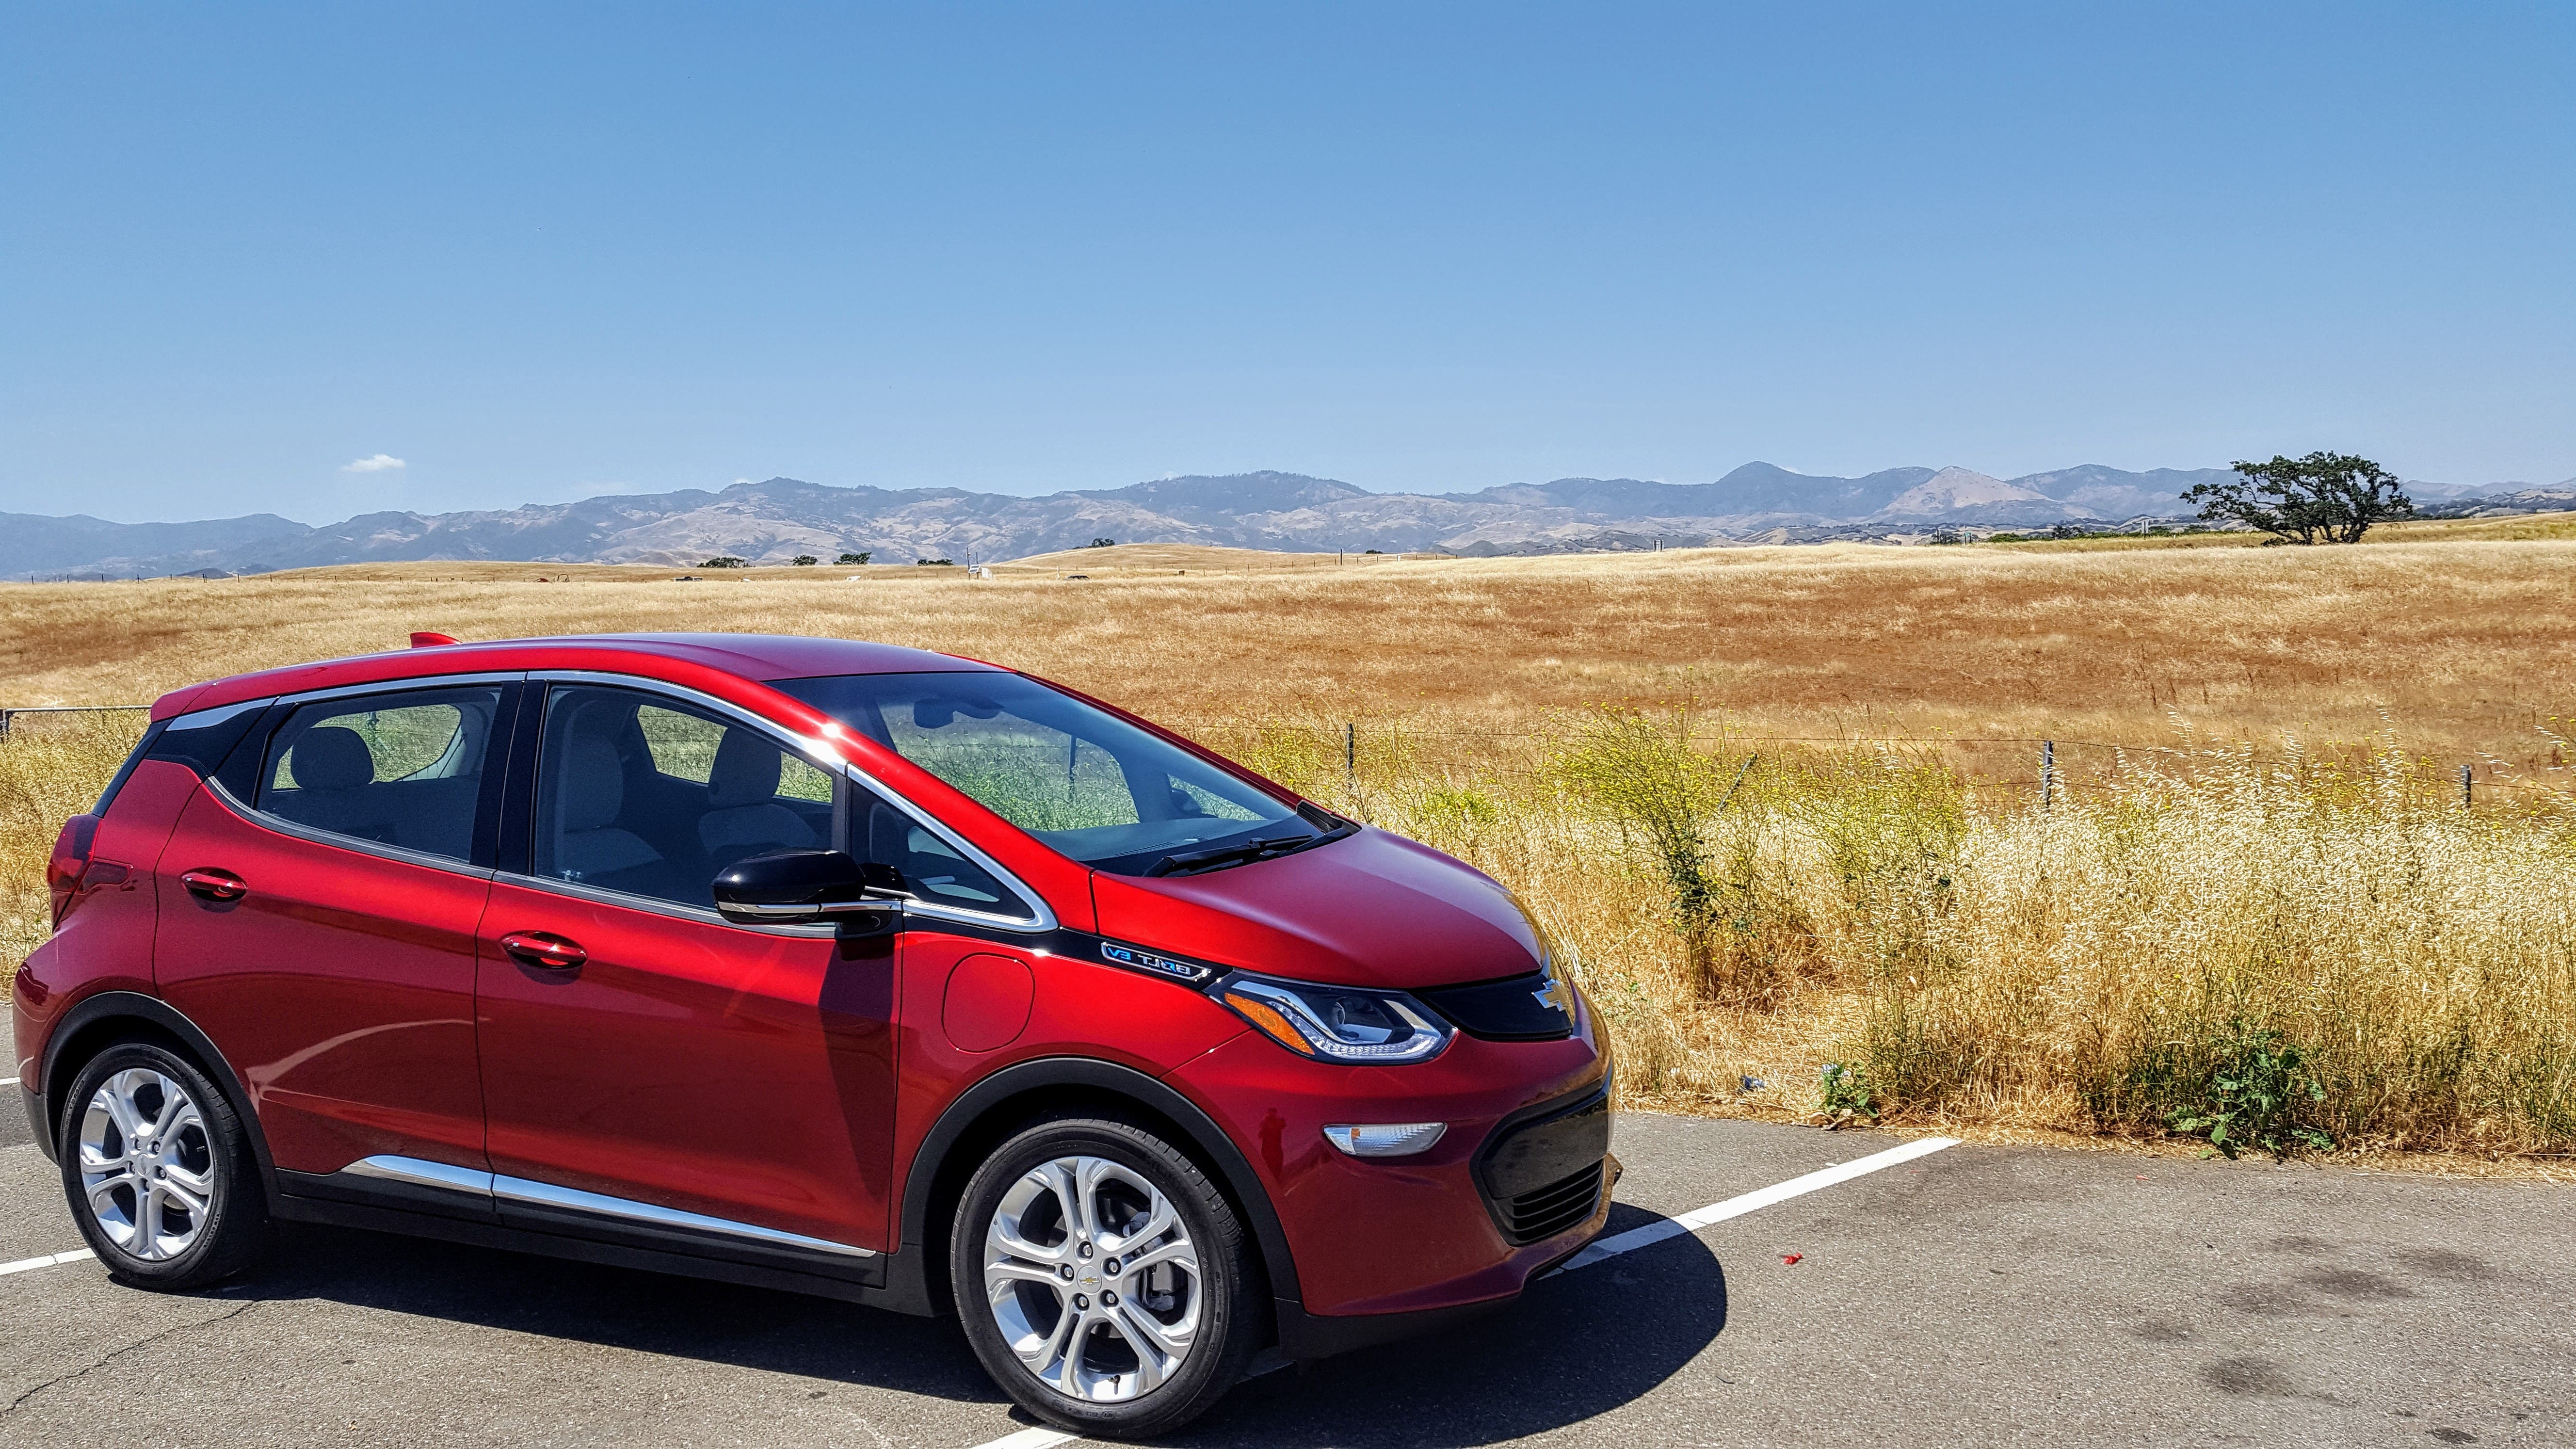 How Does Regenerative Braking Work On The Chevy Bolt? (Video +